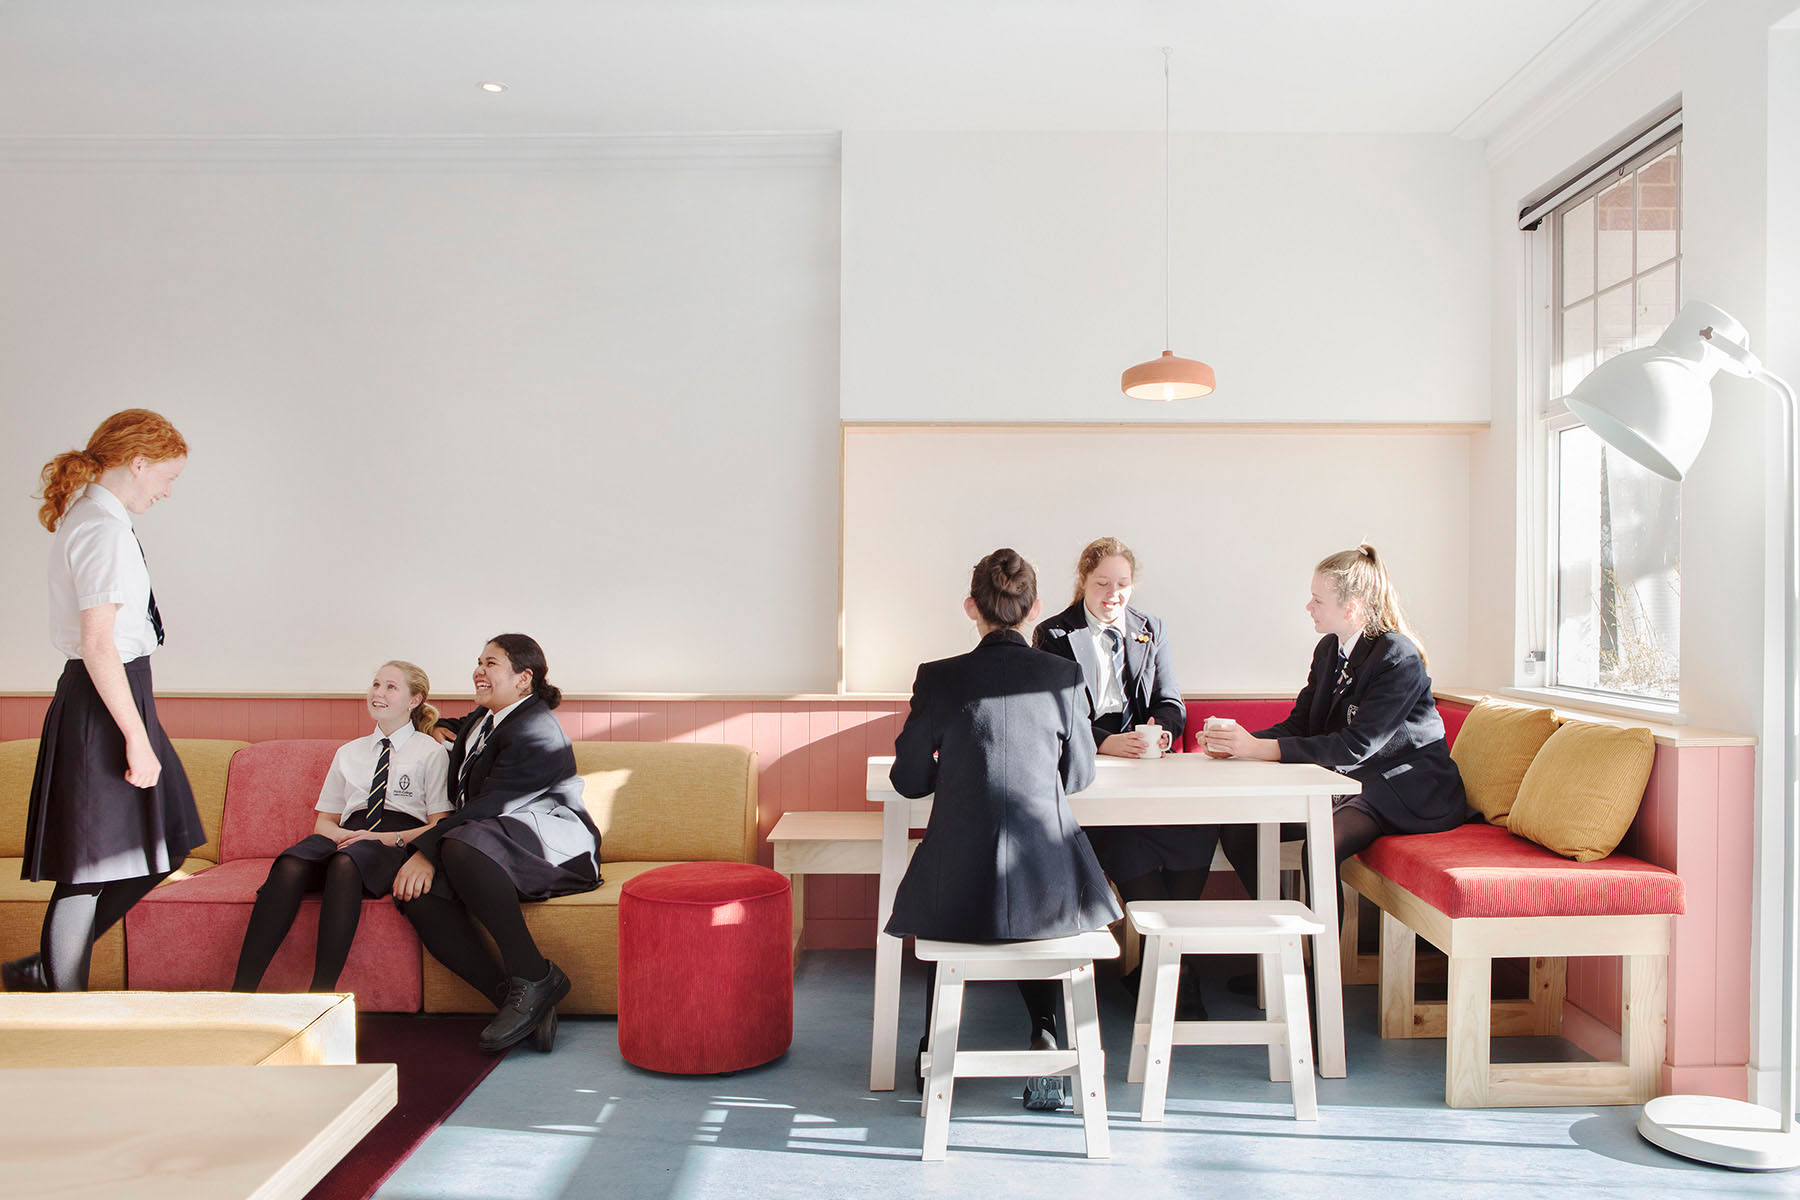 group of girls in school uniform talking at a table and couch area